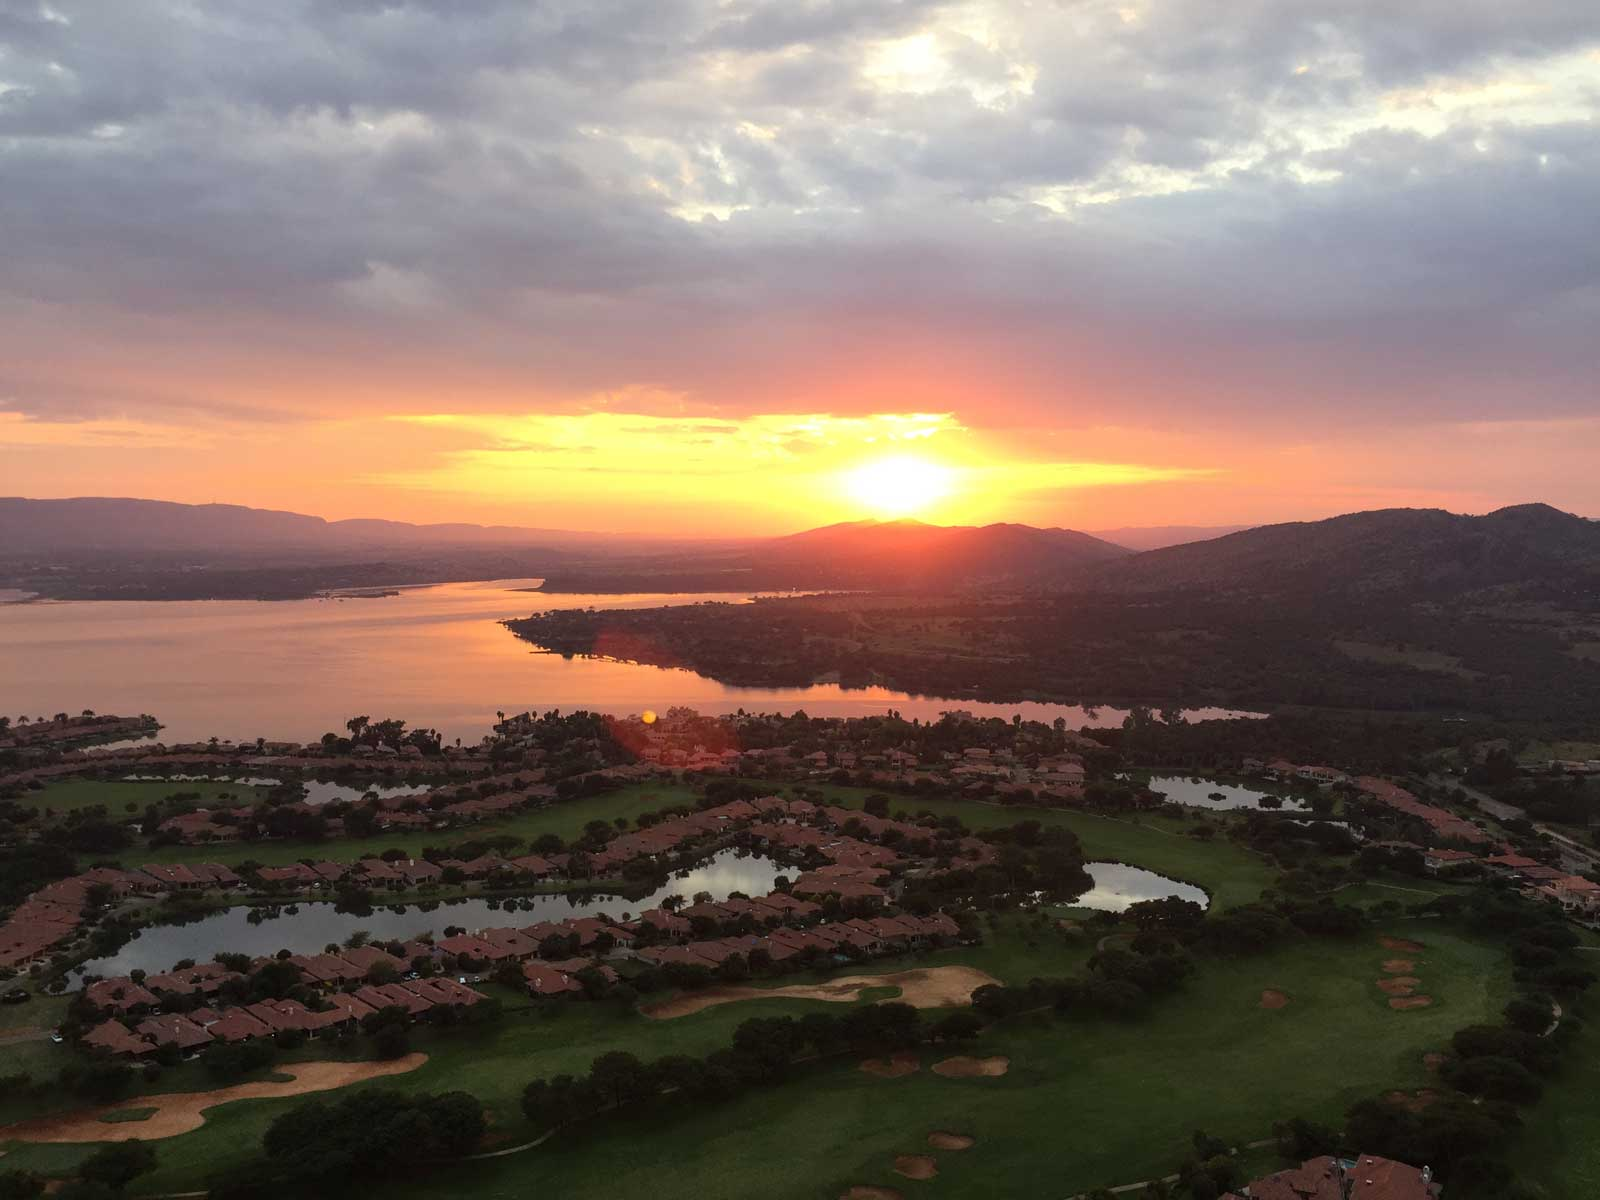 Sunrise at Hartbeespoort